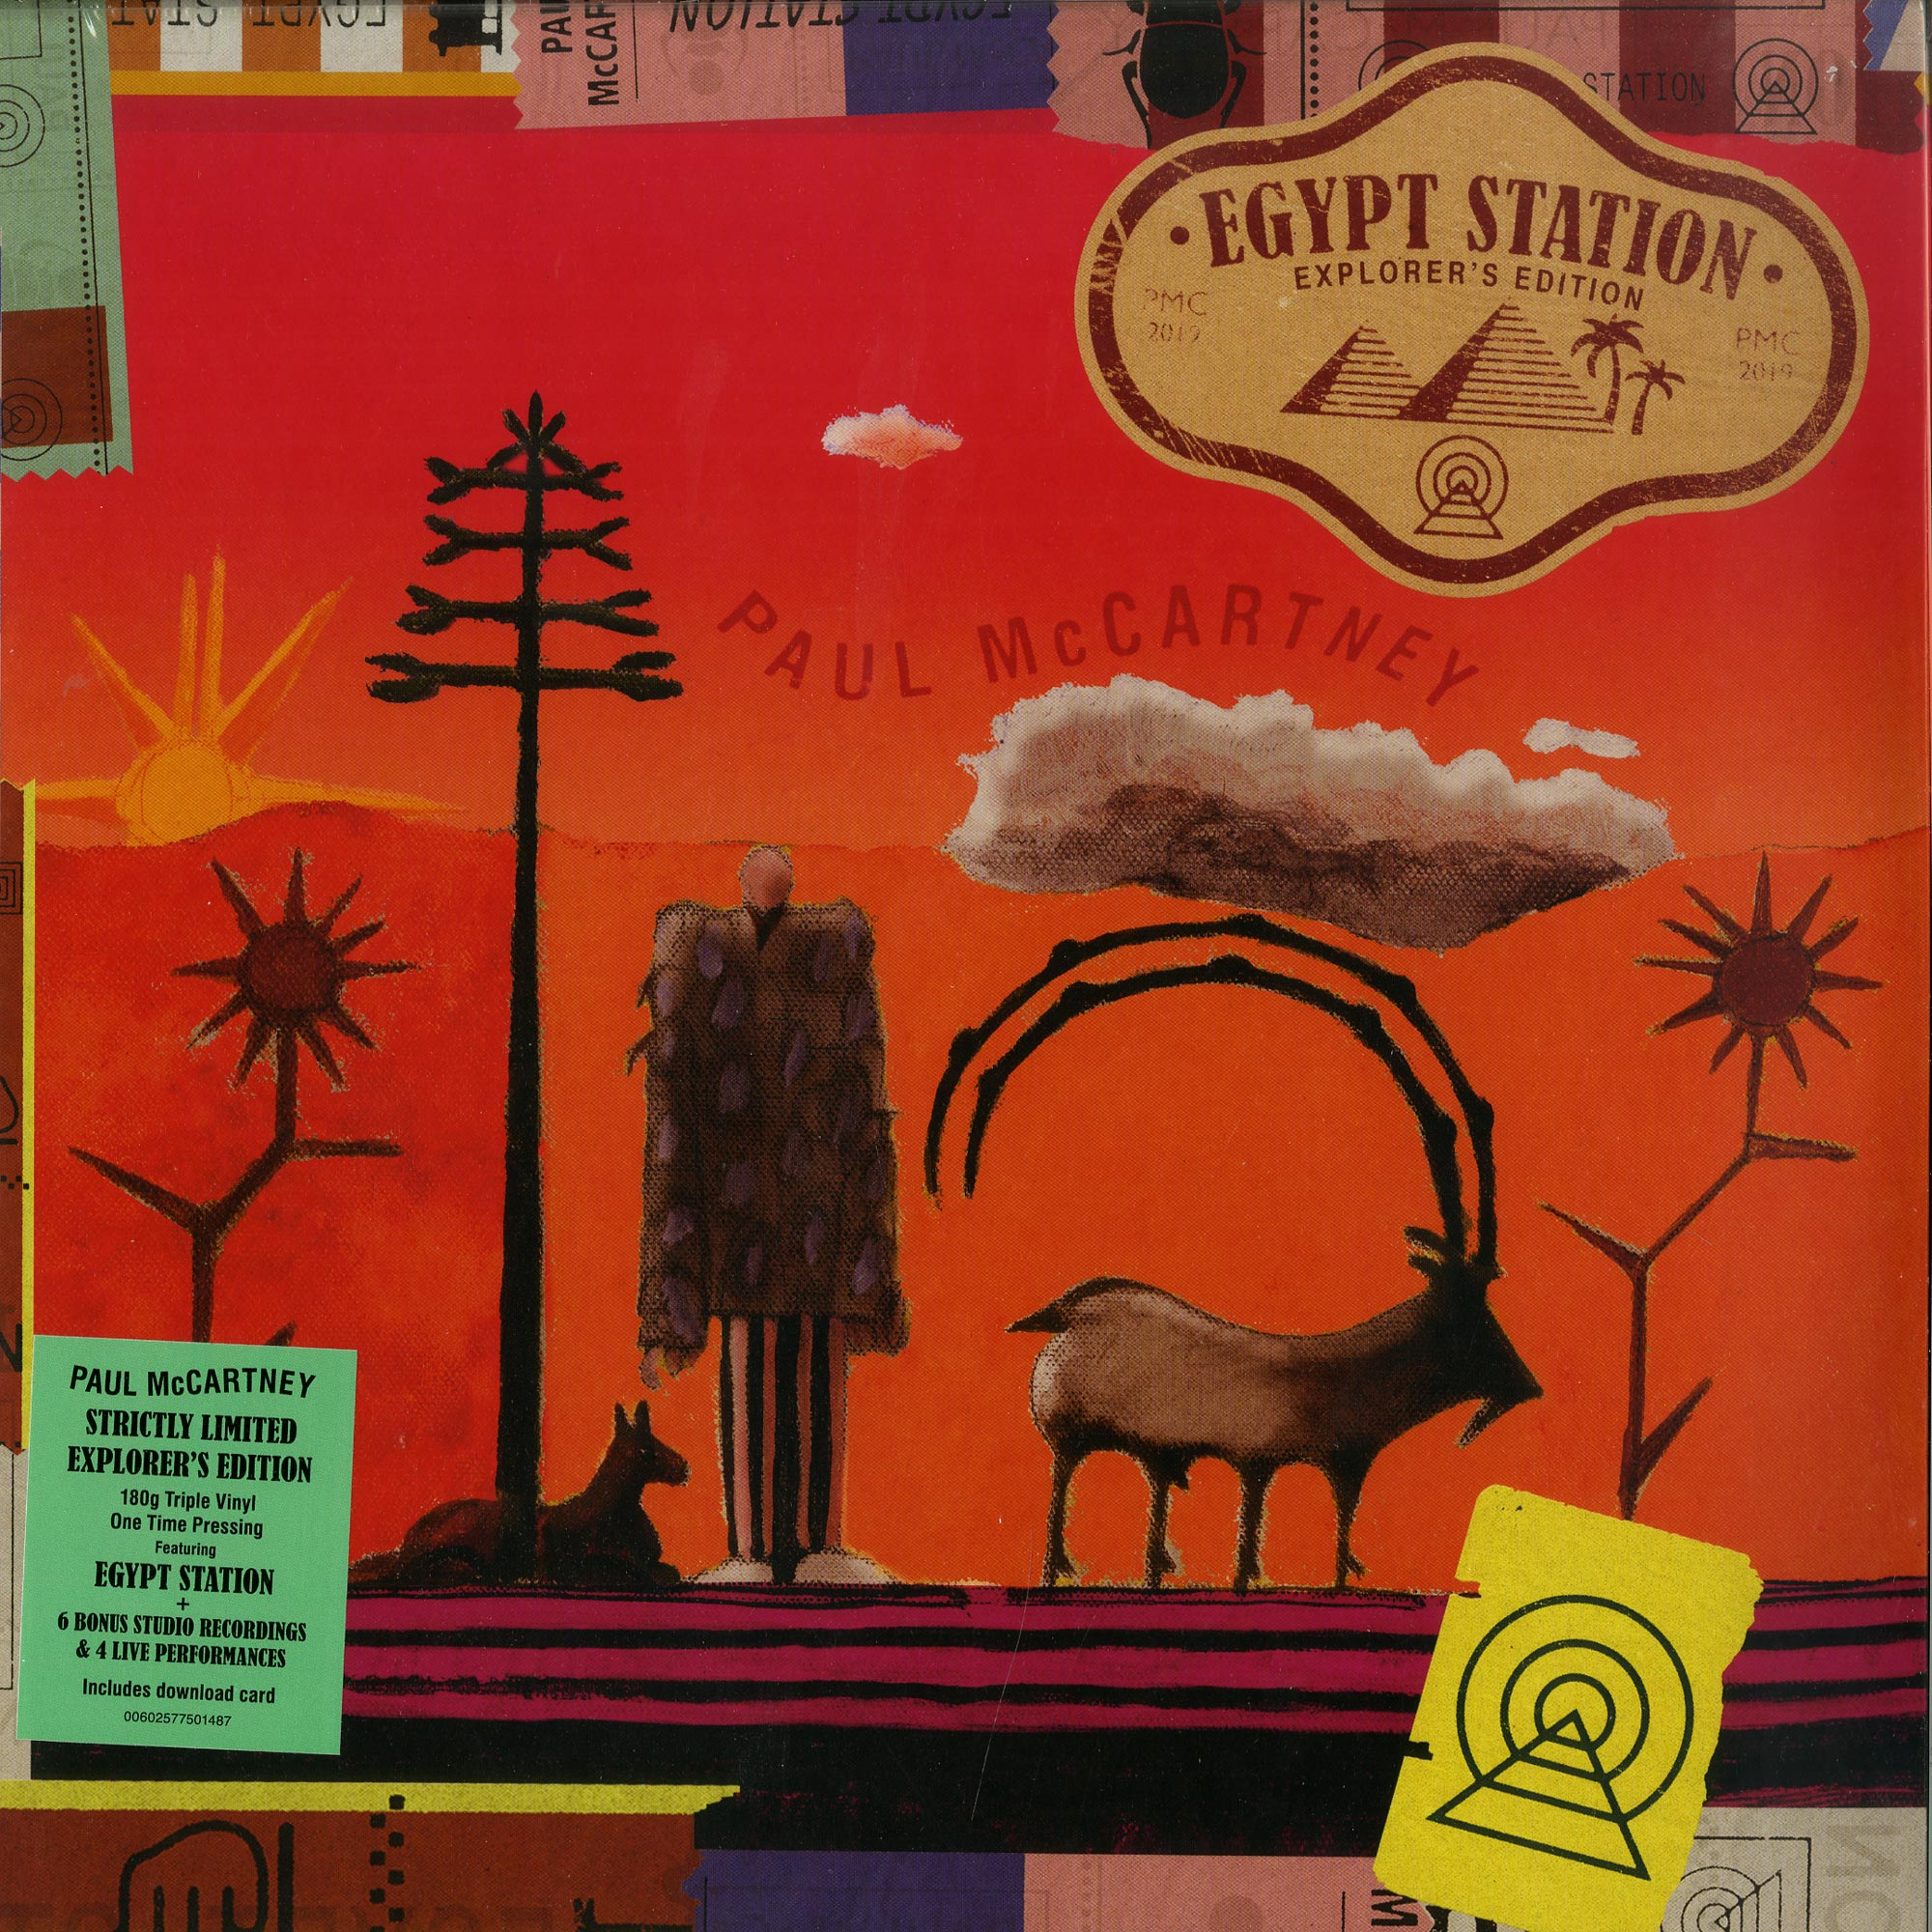 Paul McCartney - EGYPT STATION - EXPLORERS EDITION